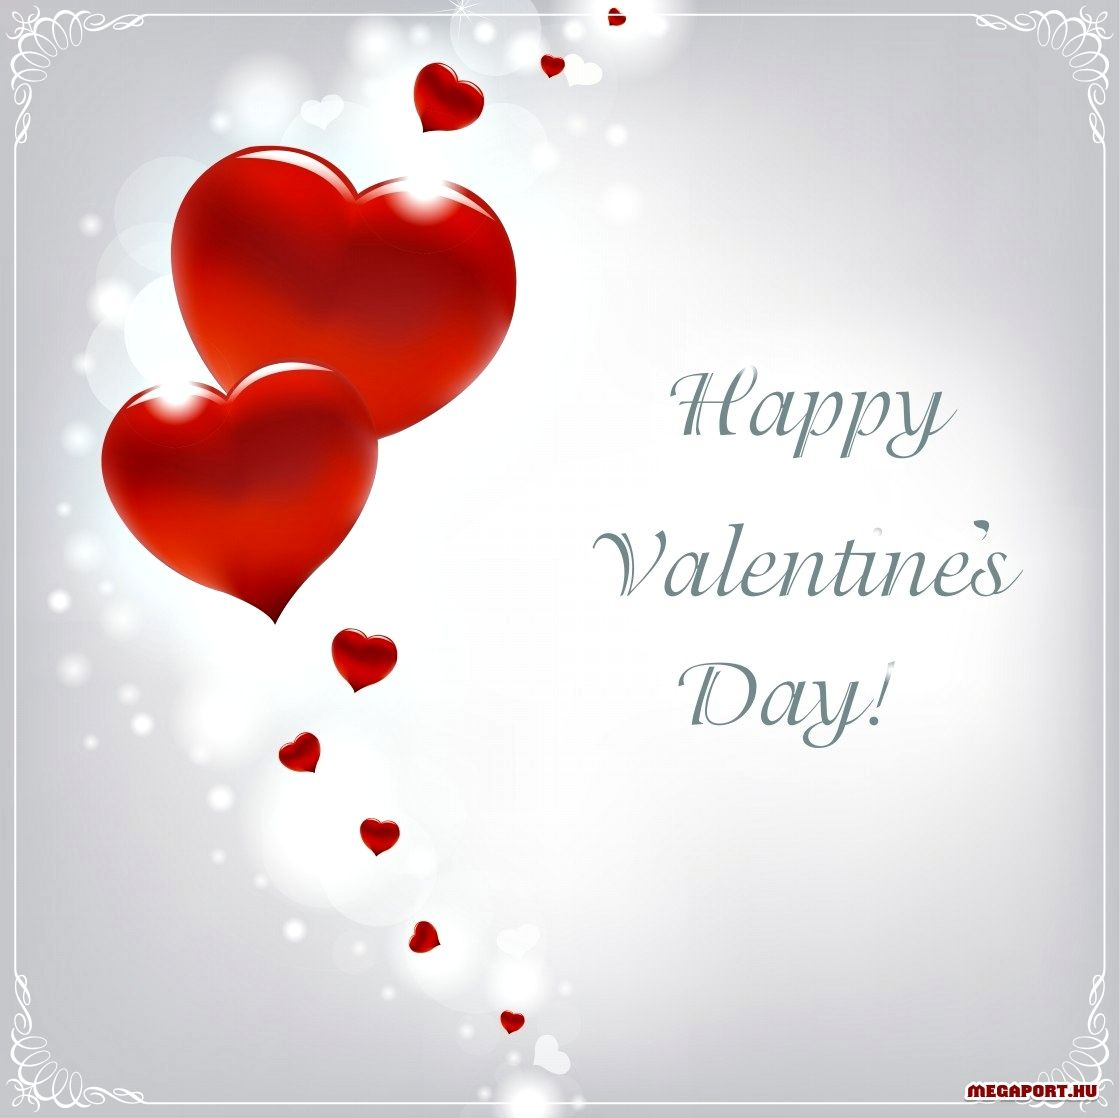 Happy Valentine In Advance Quotes: Happy Valentine's Day! Hope Everyone's Day Is Filled With